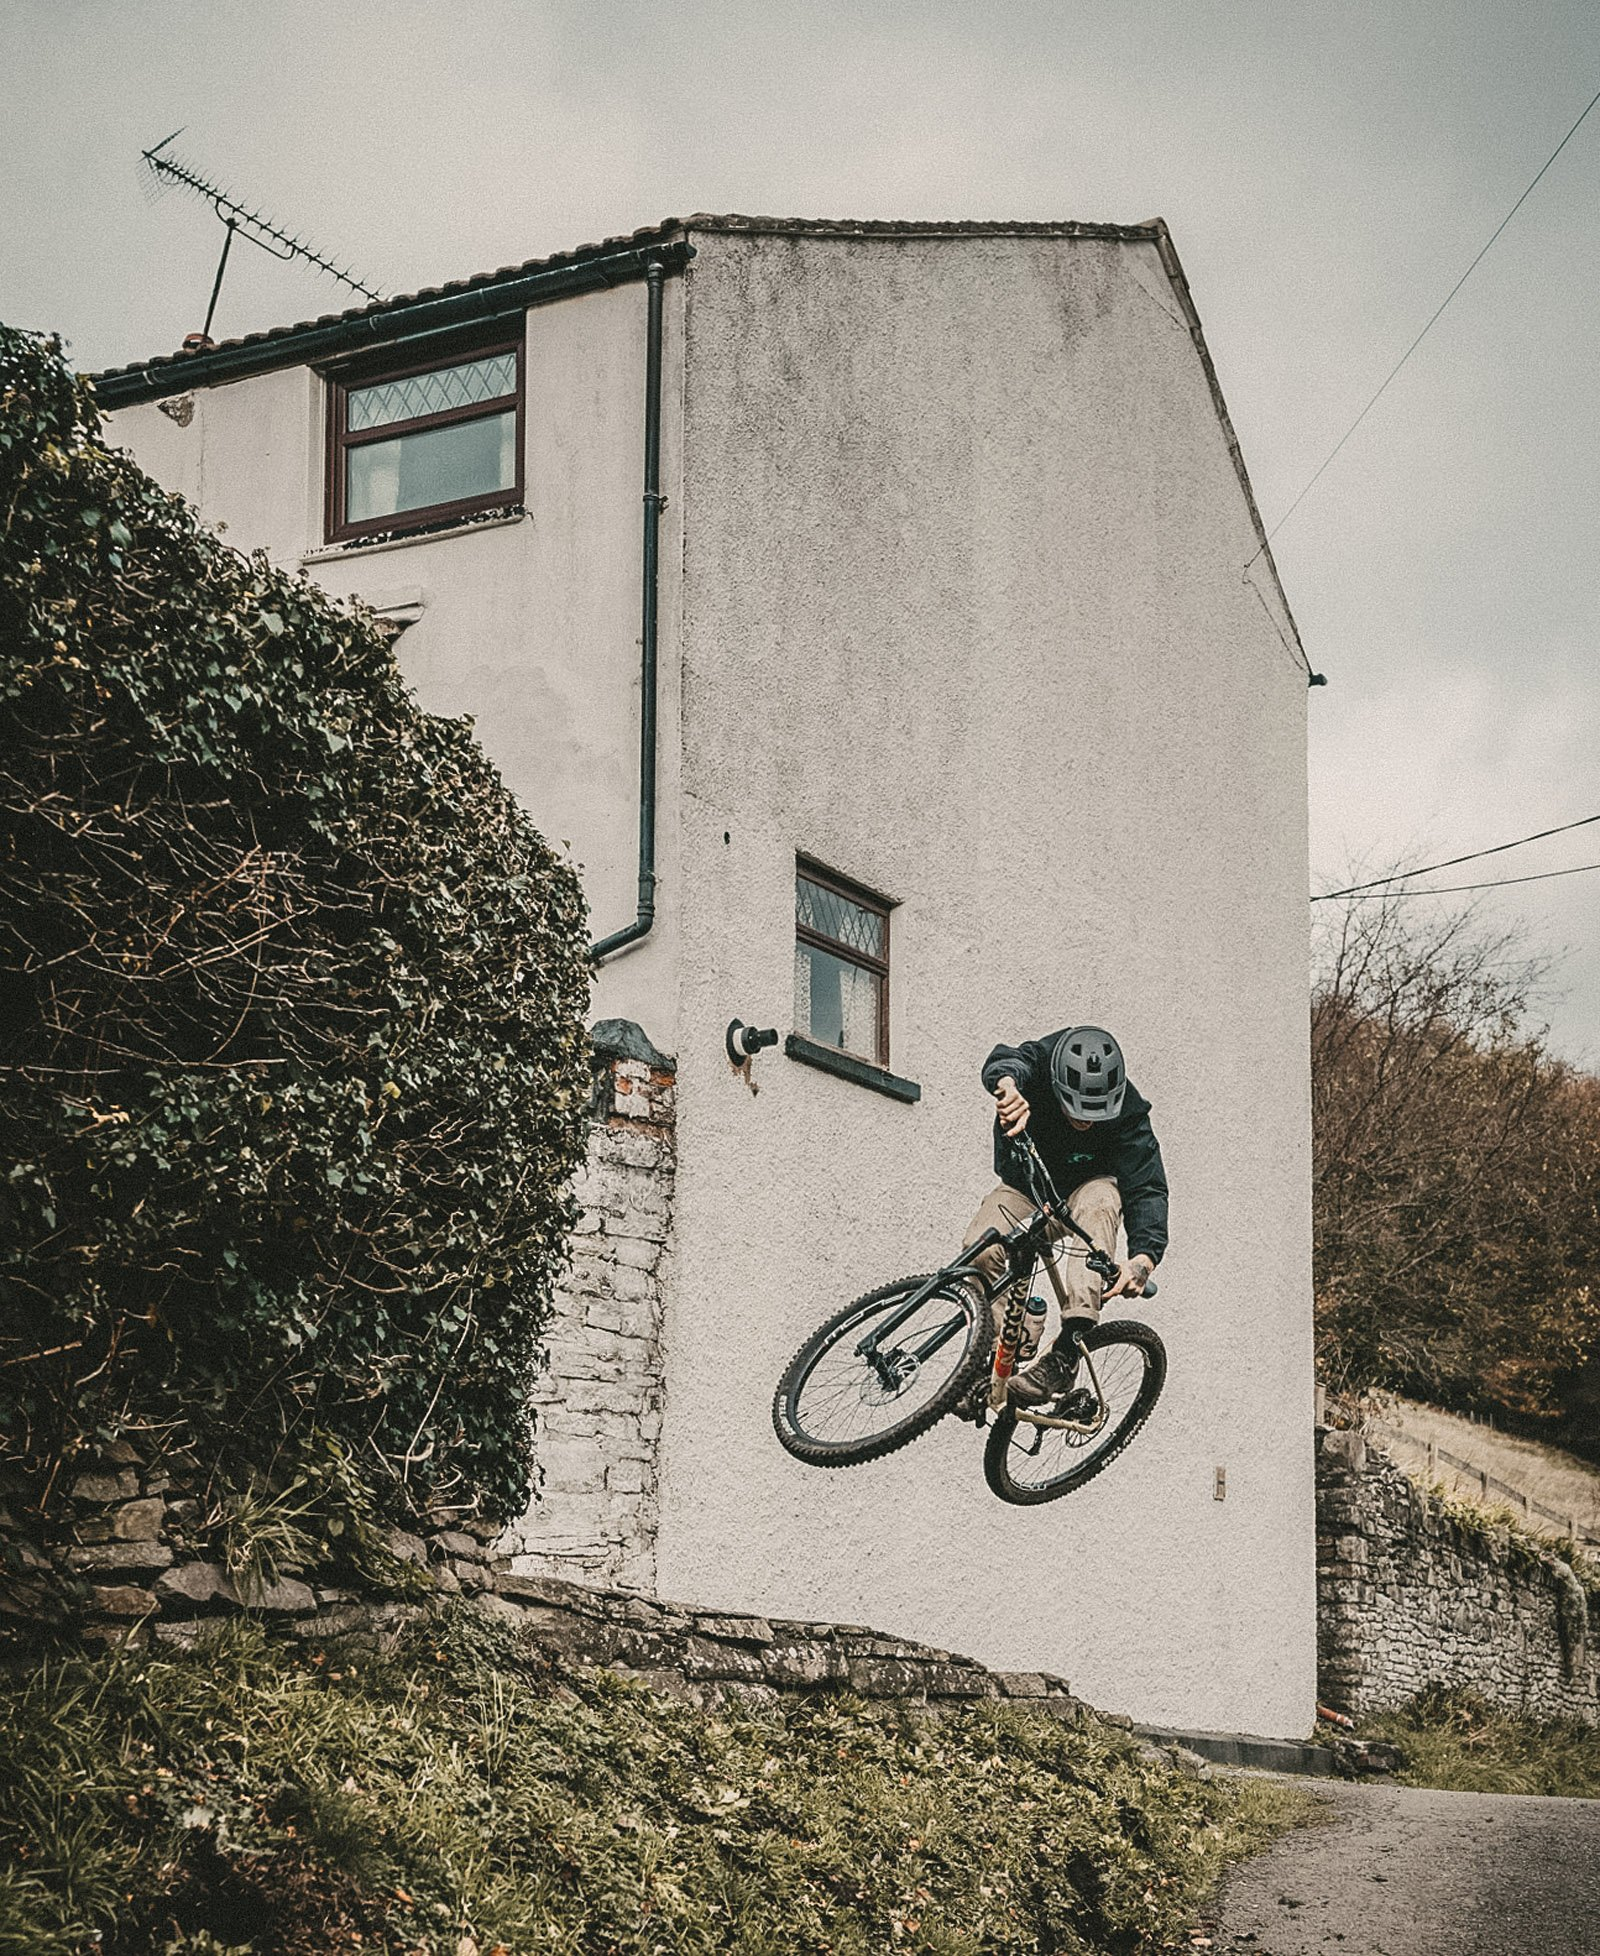 Moutain biker jumping from house